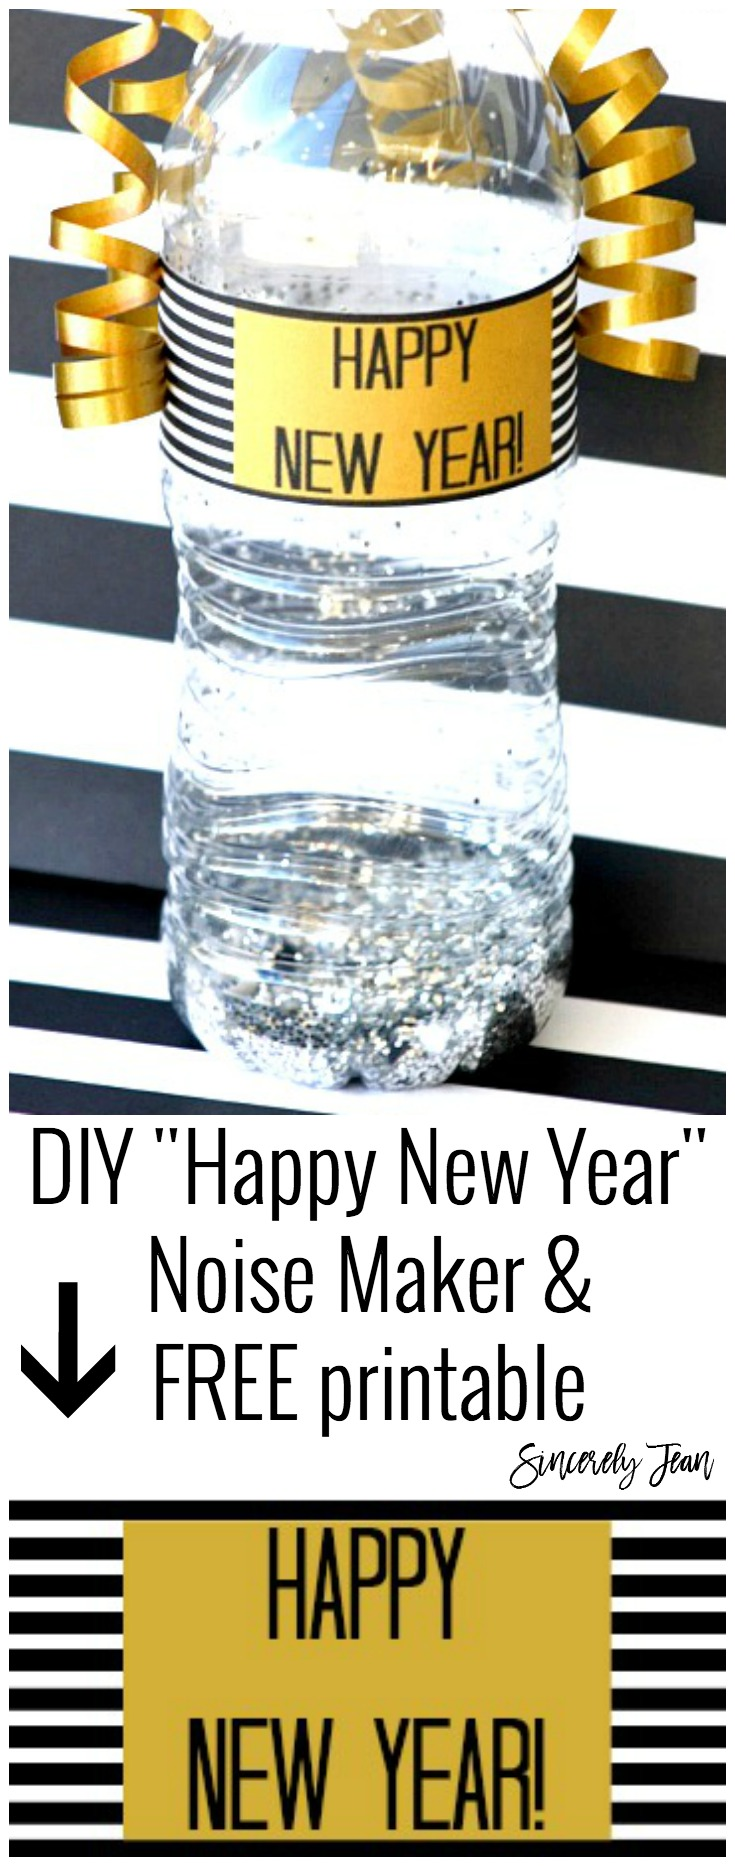 DIY Happy New Year noise maker and free printable - perfect New Years Eve craft for kids to make! | www.SincerelyJean.com